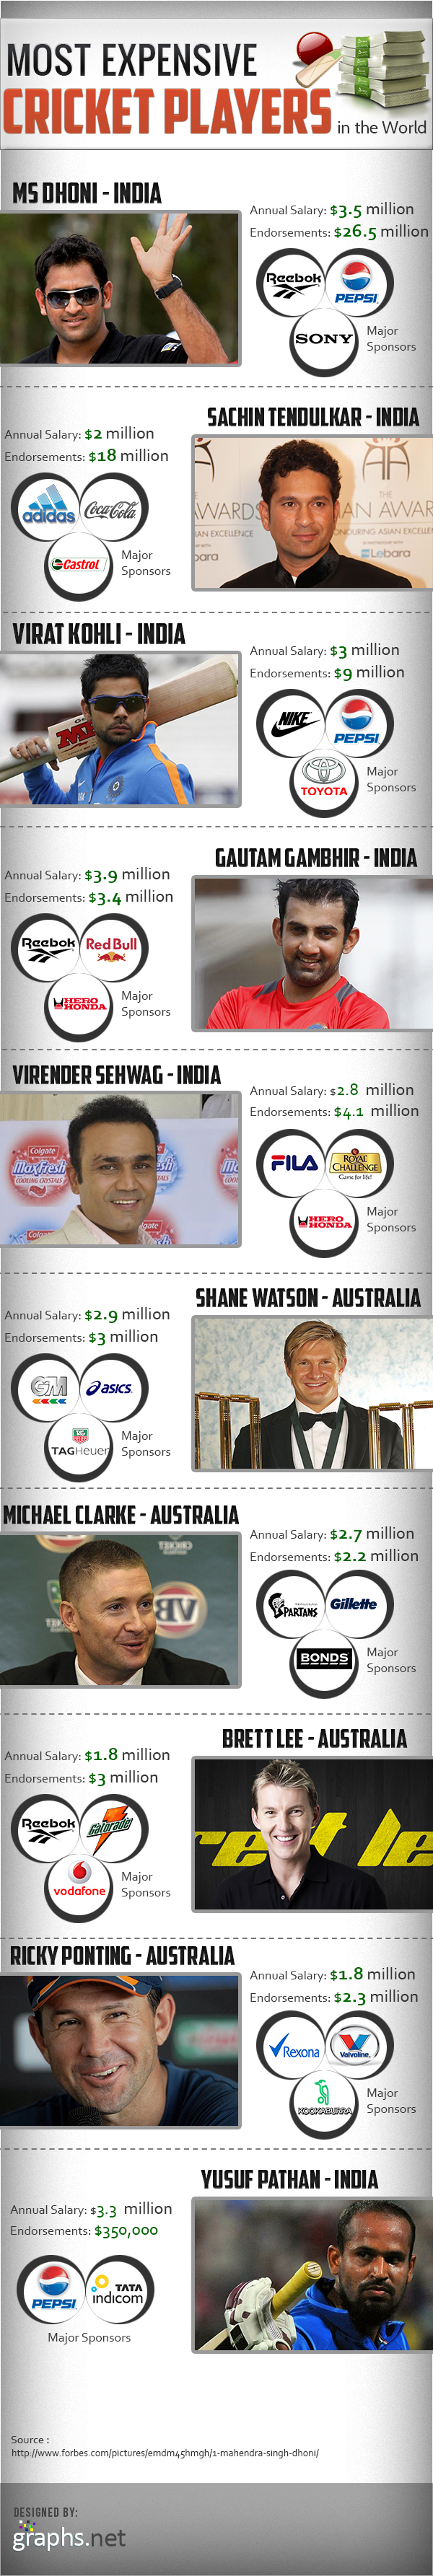 Most Expensive Cricket Players in the World